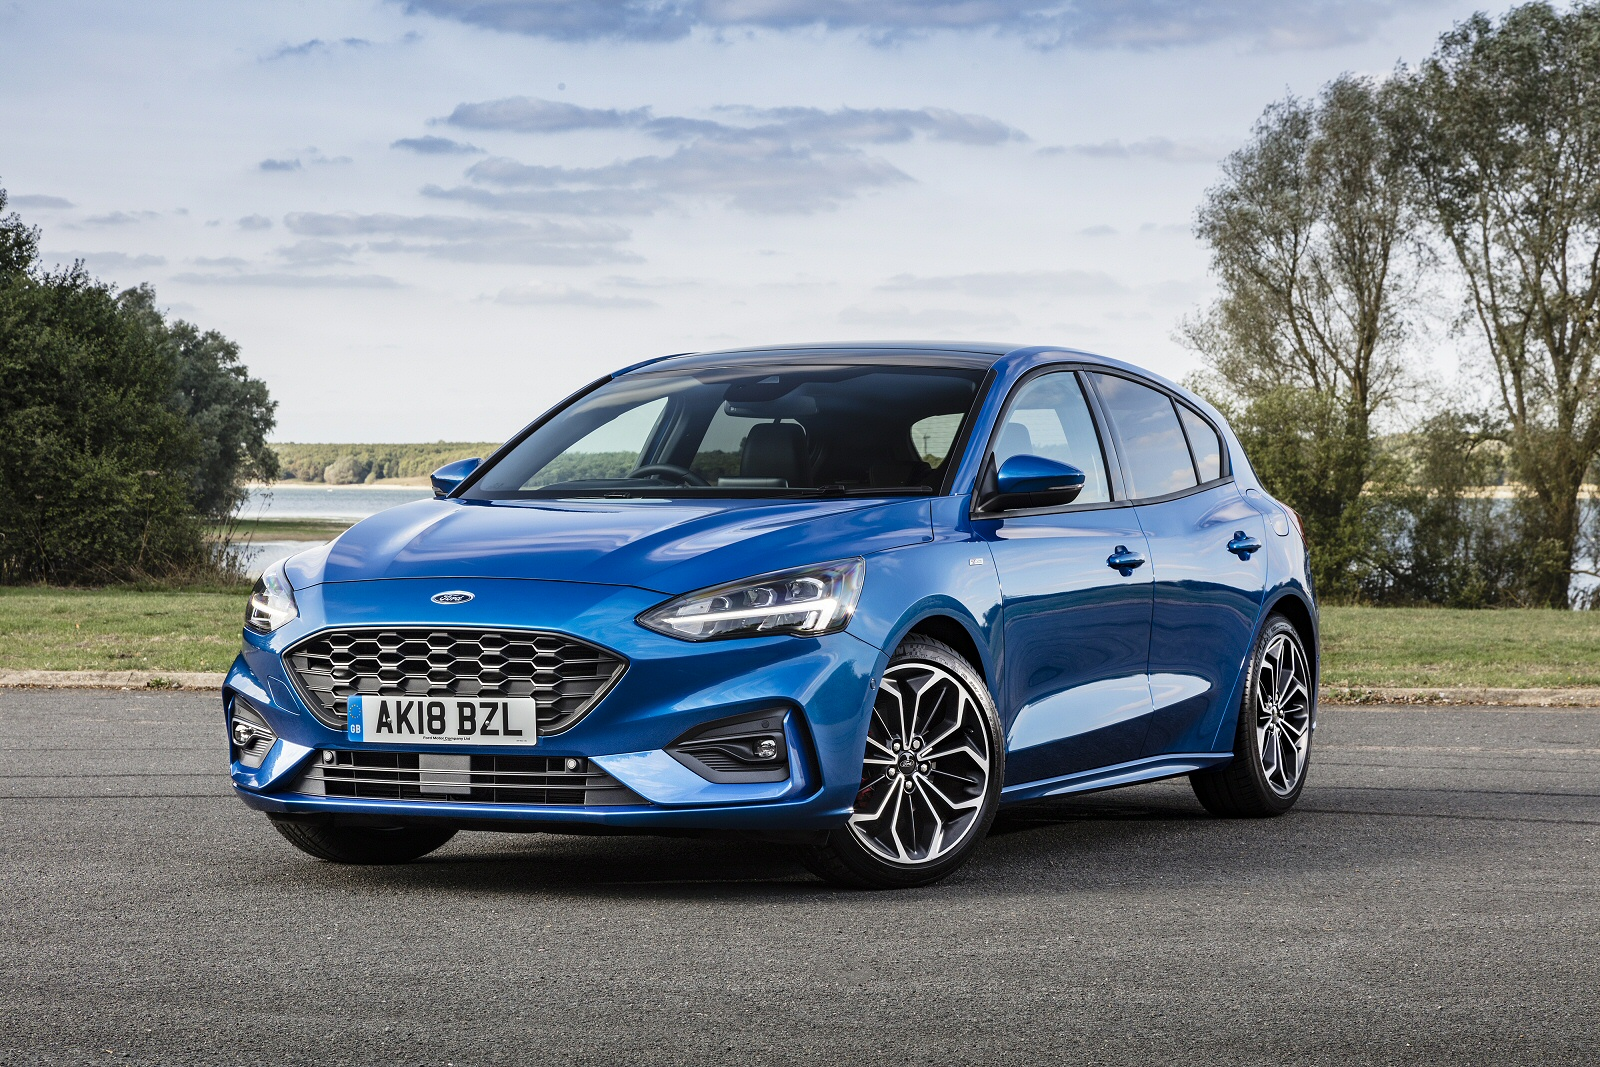 new ford focus 1 0 ecoboost 85 style 5dr petrol hatchback. Black Bedroom Furniture Sets. Home Design Ideas